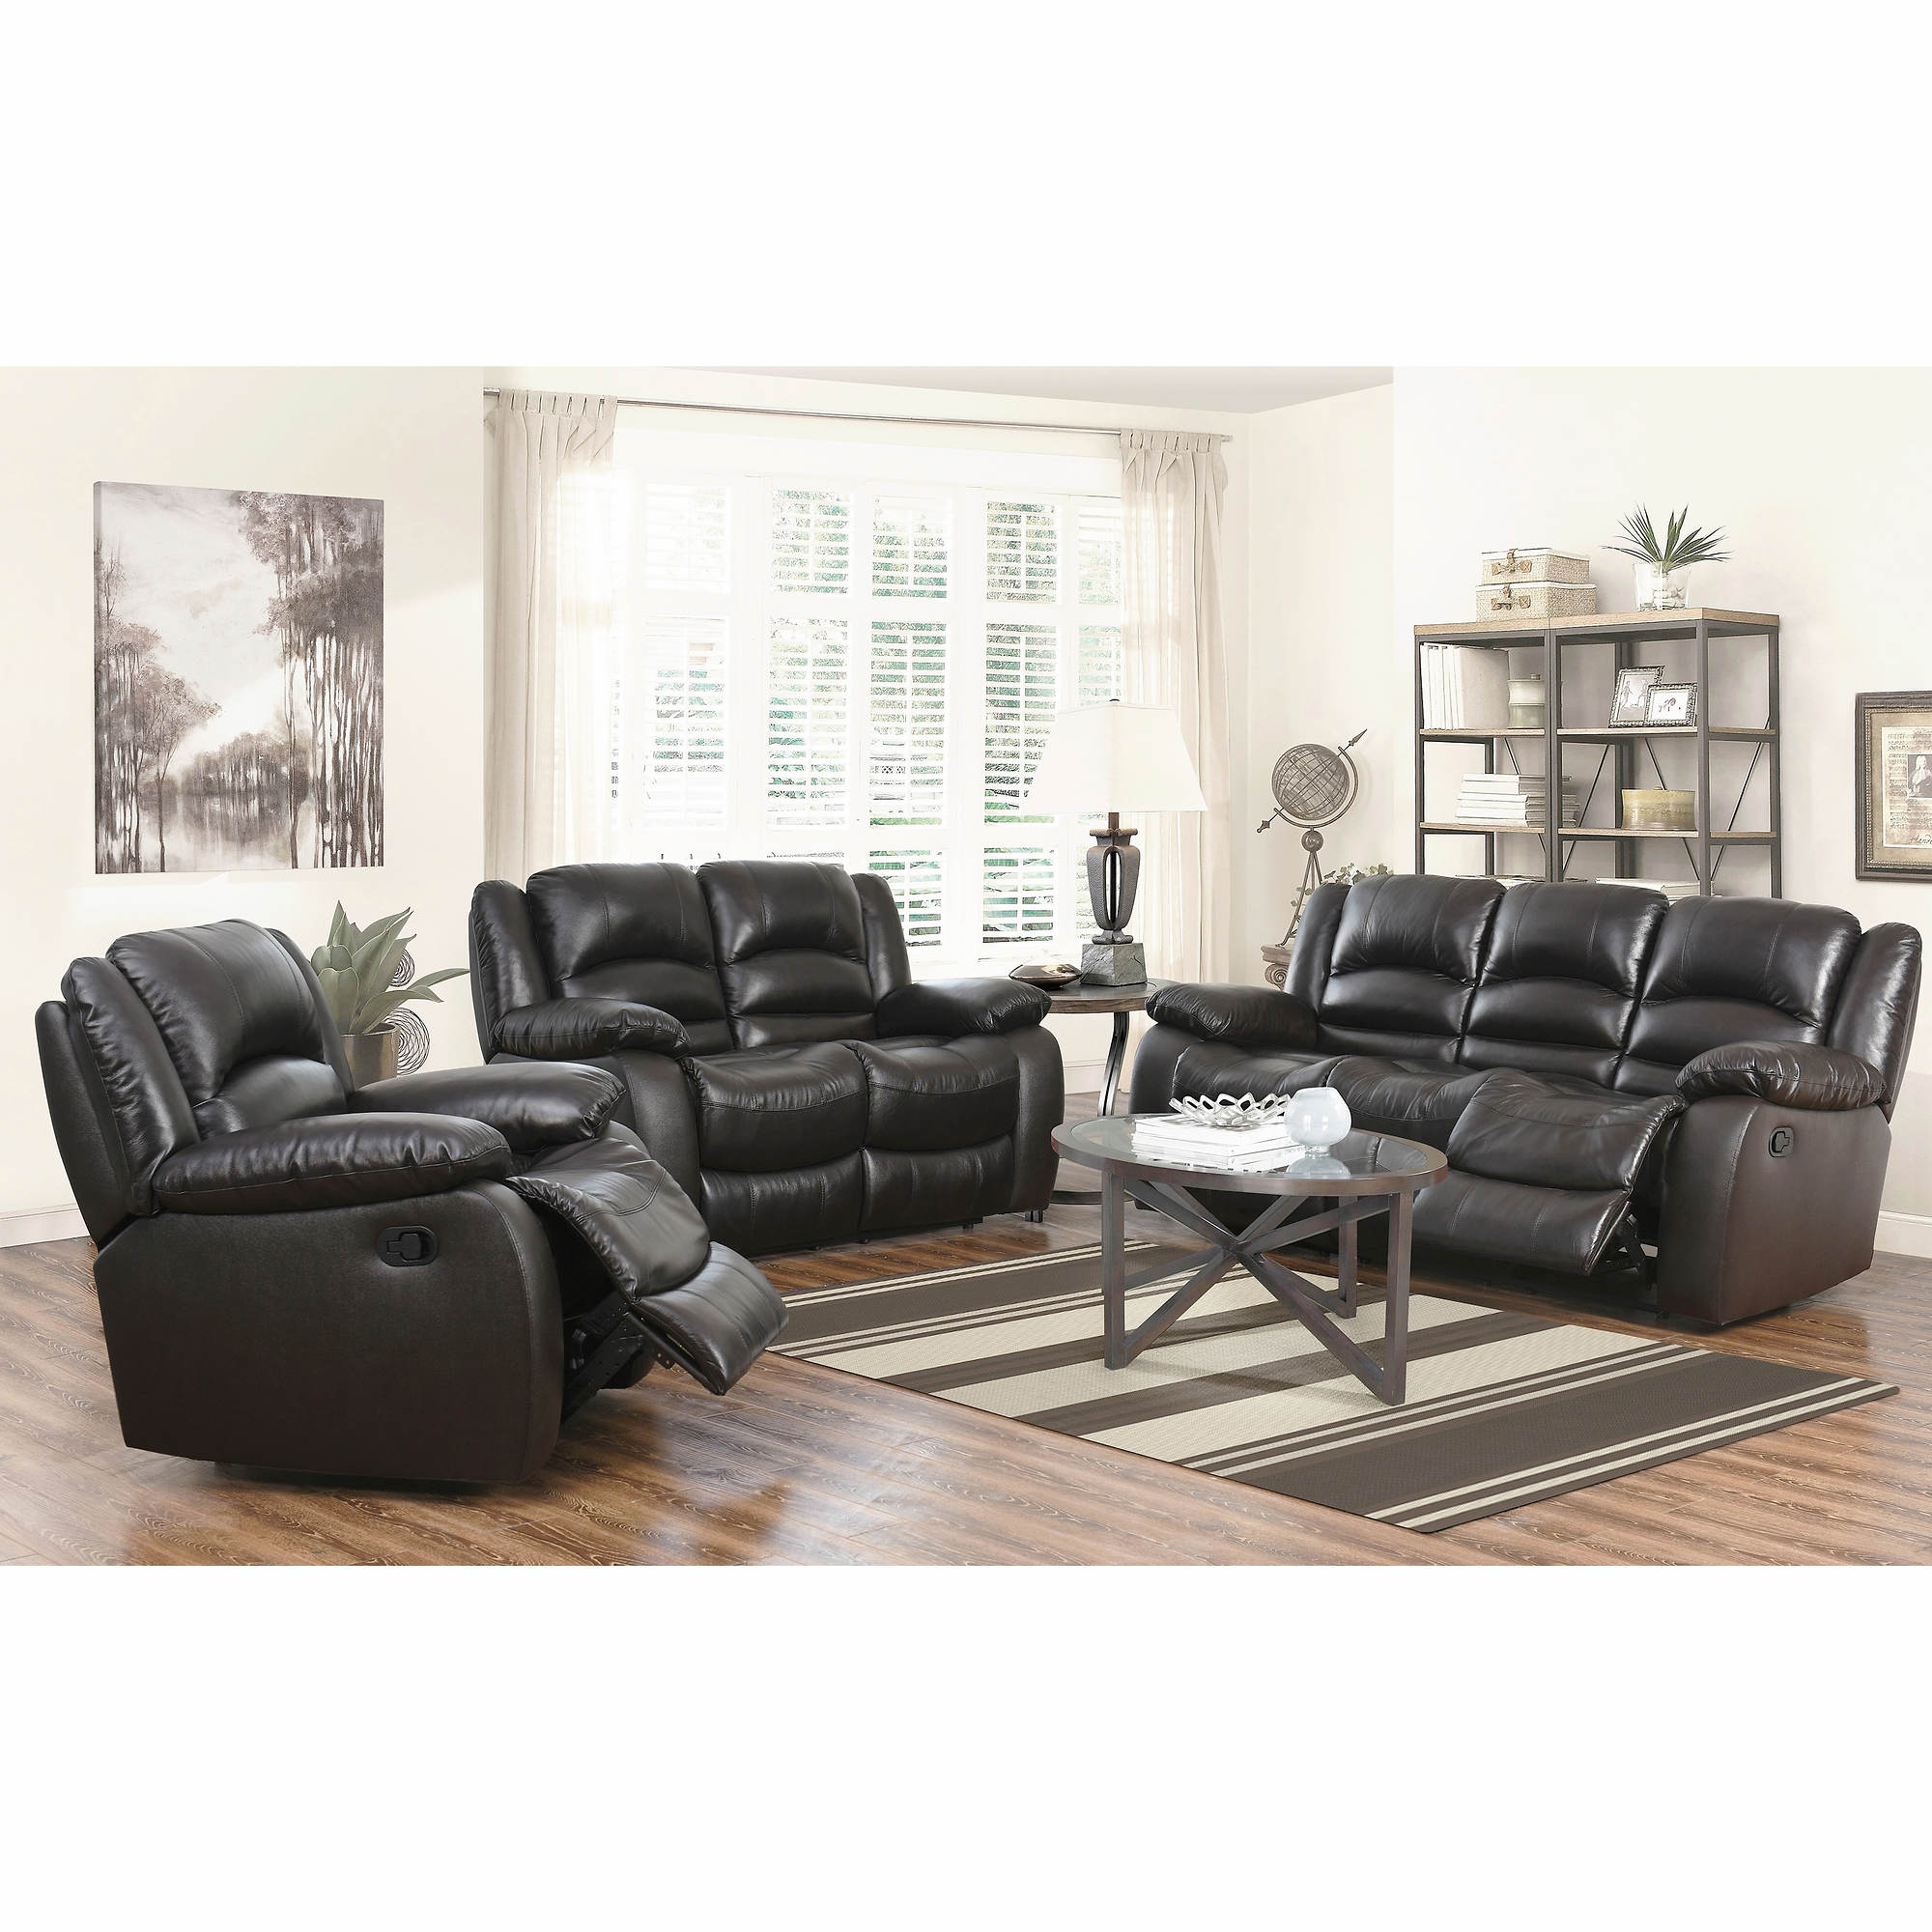 Abbyson living cayman 3 pc italian leather reclining for Brown leather living room set